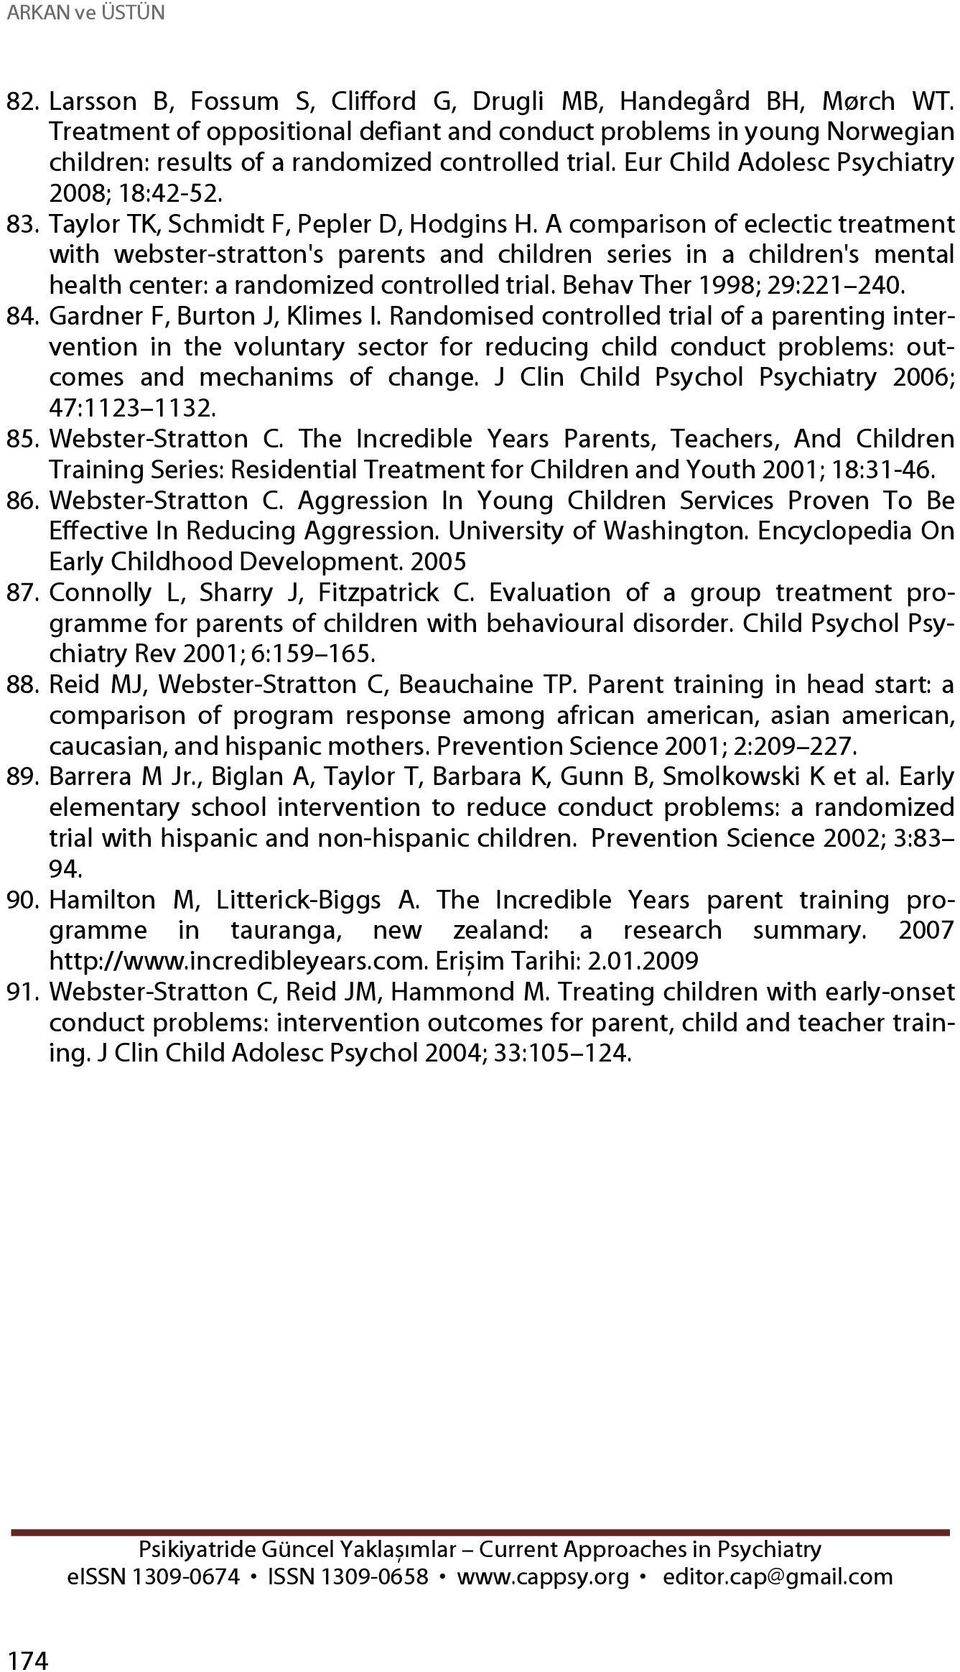 Taylor TK, Schmidt F, Pepler D, Hodgins H. A comparison of eclectic treatment with webster-stratton's parents and children series in a children's mental health center: a randomized controlled trial.